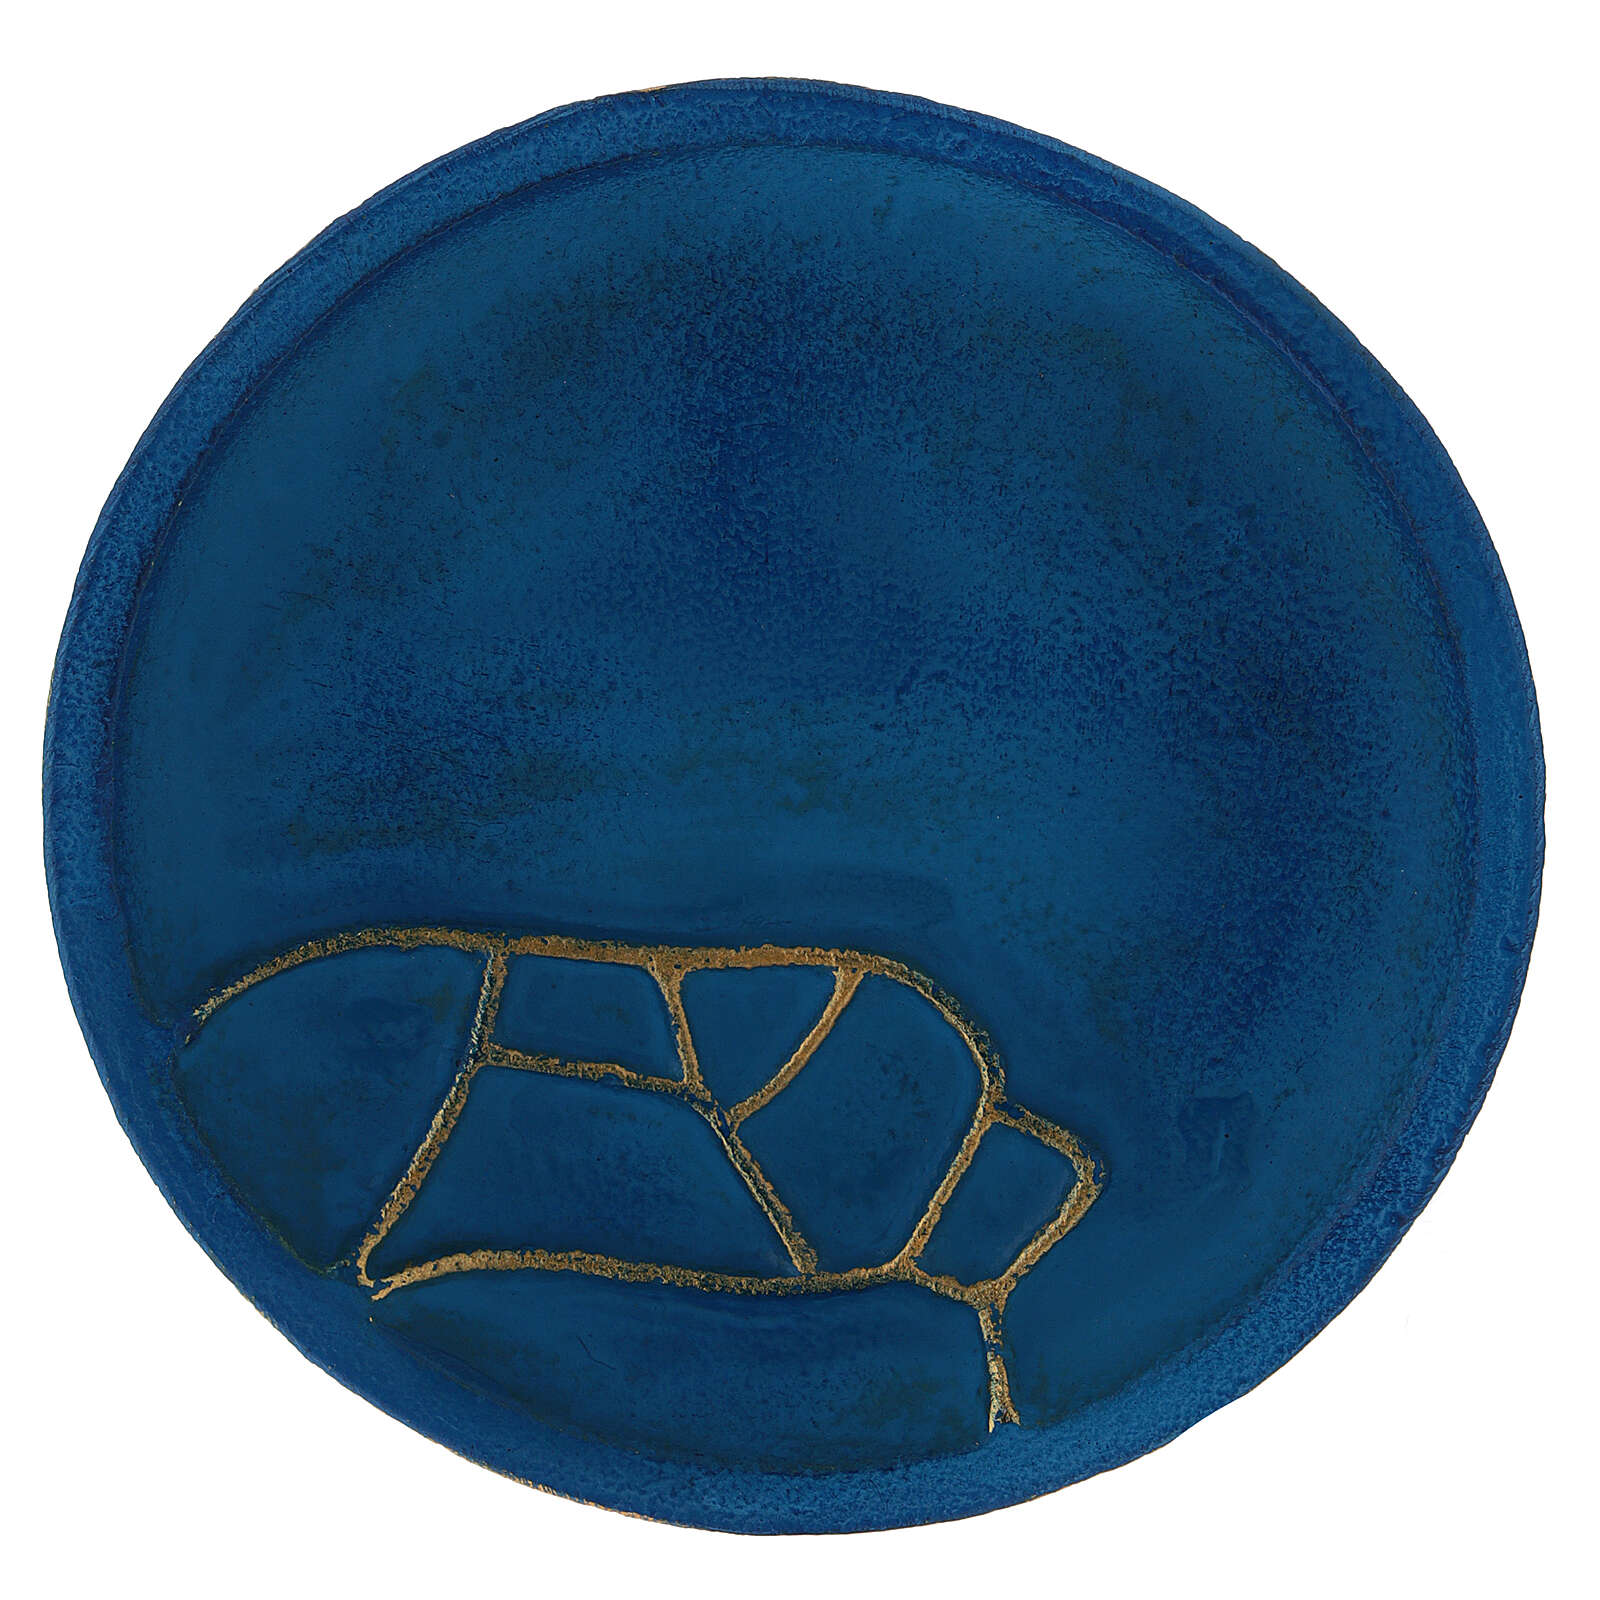 Turquoise plate for candles diameter 4 3/4 in 3